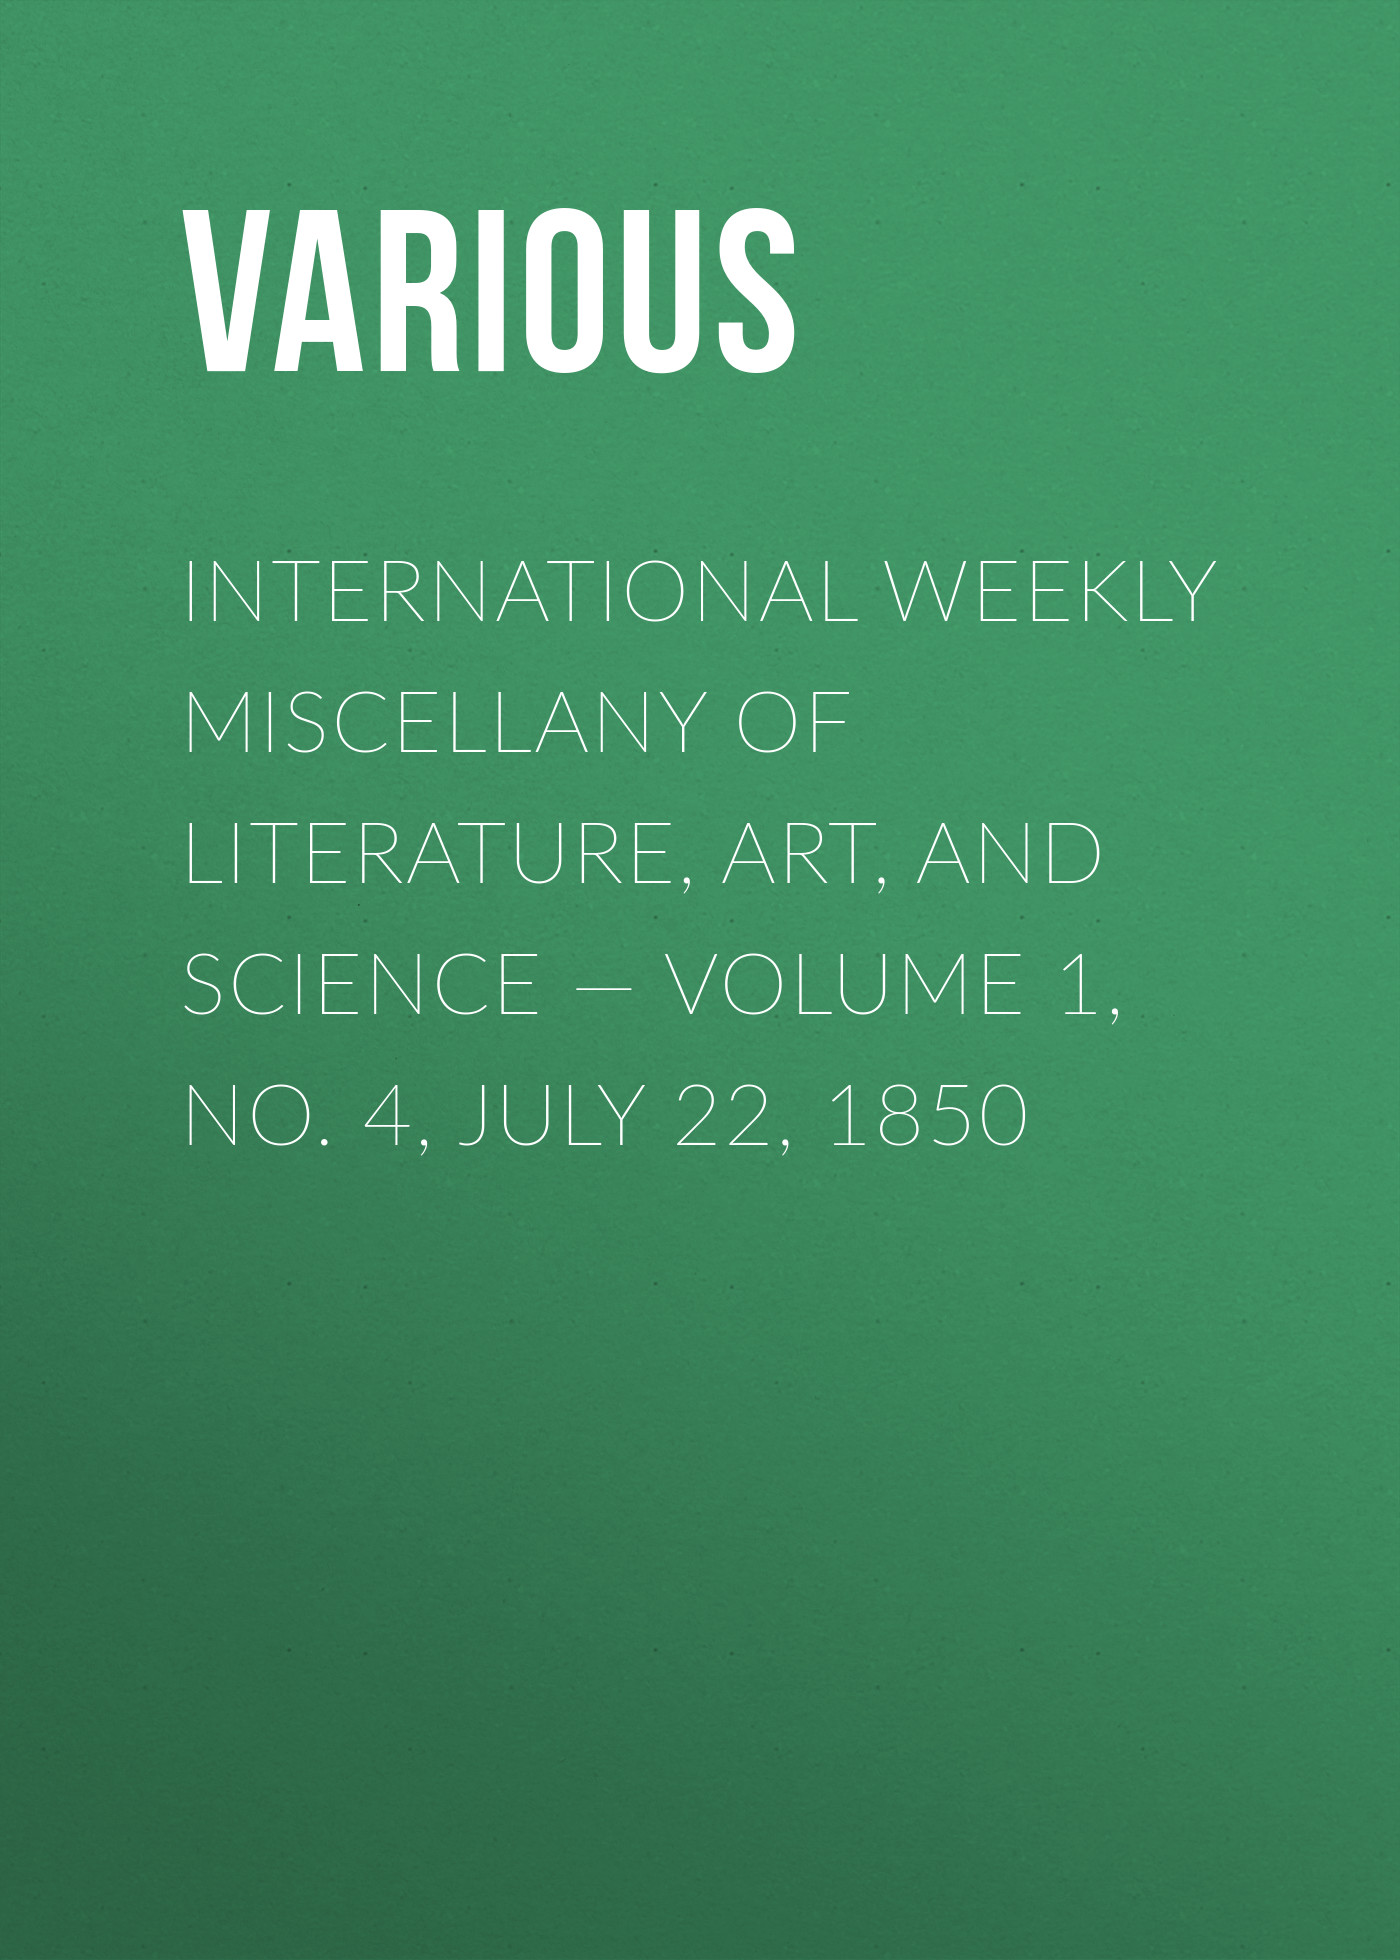 Various International Weekly Miscellany of Literature, Art, and Science — Volume 1, No. 4, July 22, 1850 журнал international science project